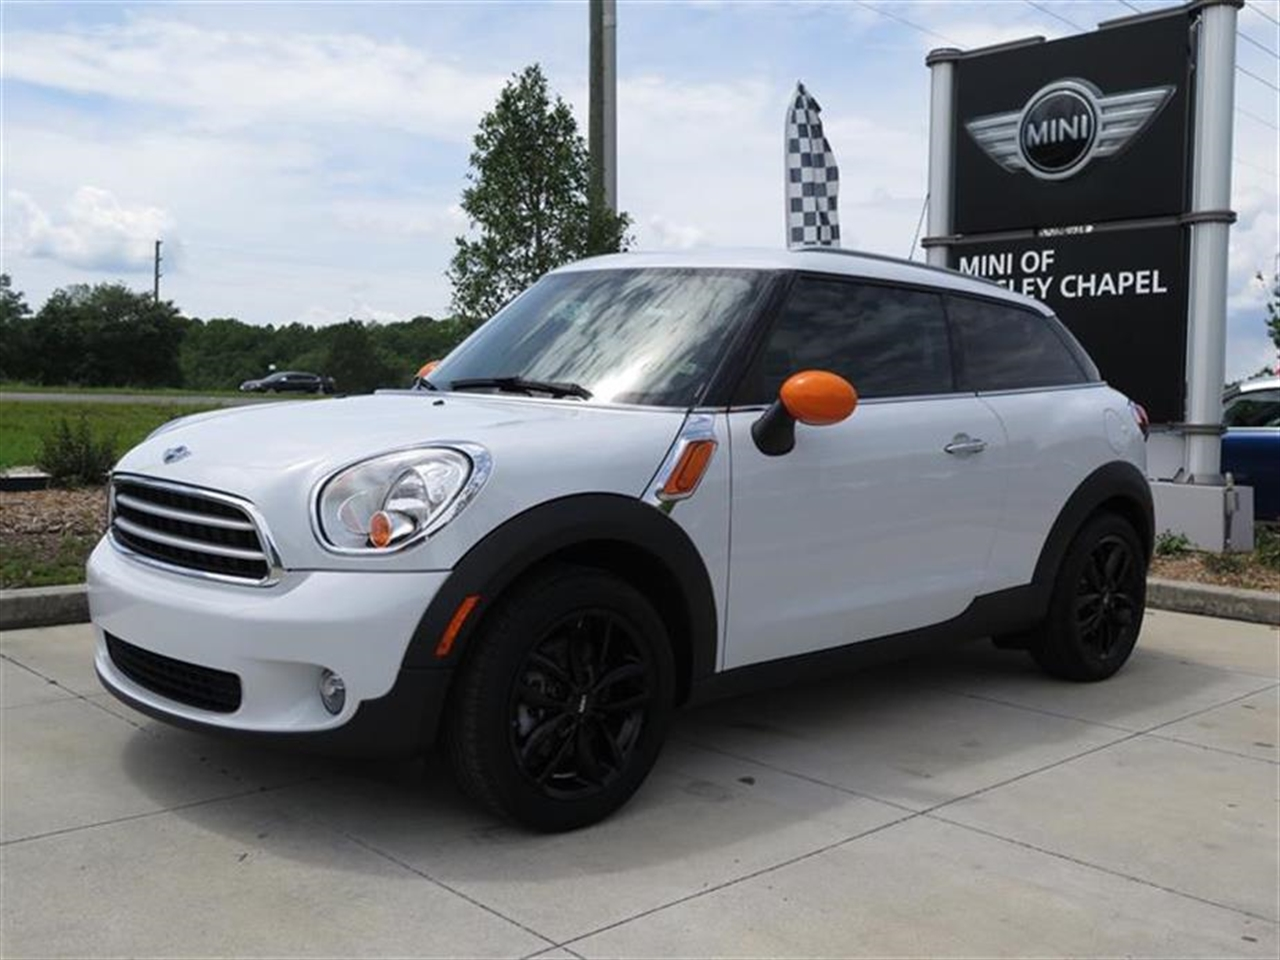 2014 MINI COOPER PACEMAN FWD 2dr 0 miles 2 Seatback Storage Pockets 3 12V DC Power Outlets 4 Per